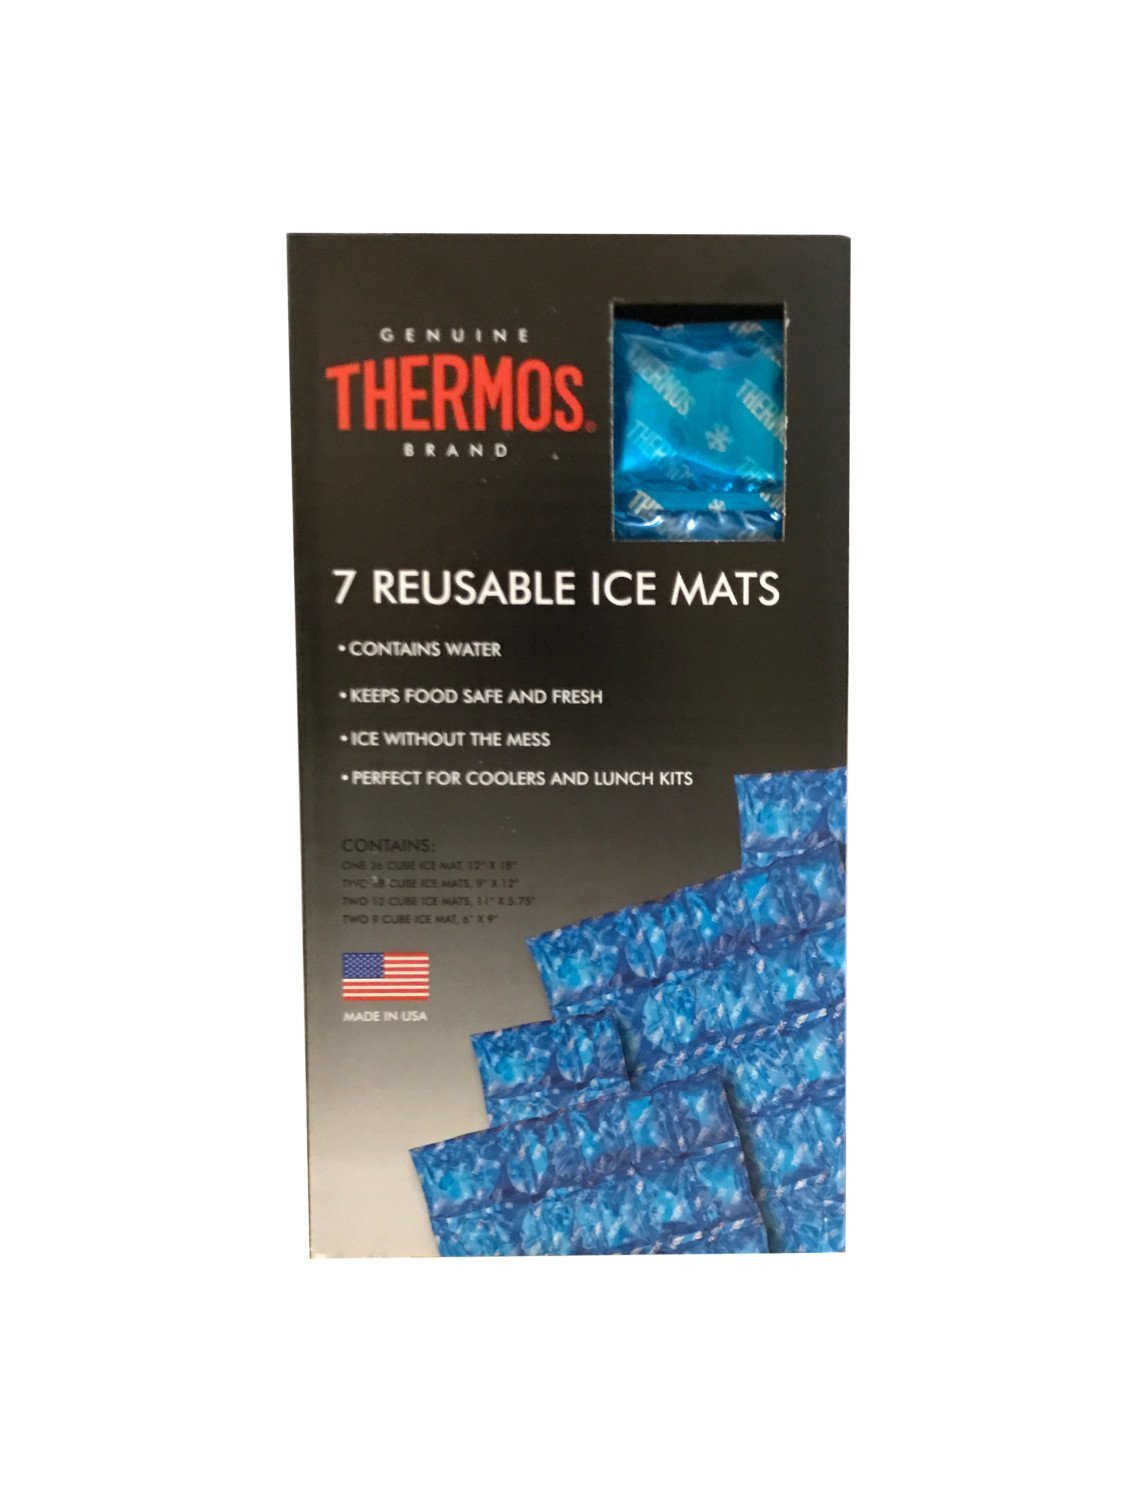 Thermos 7 Reusable Ice Mats